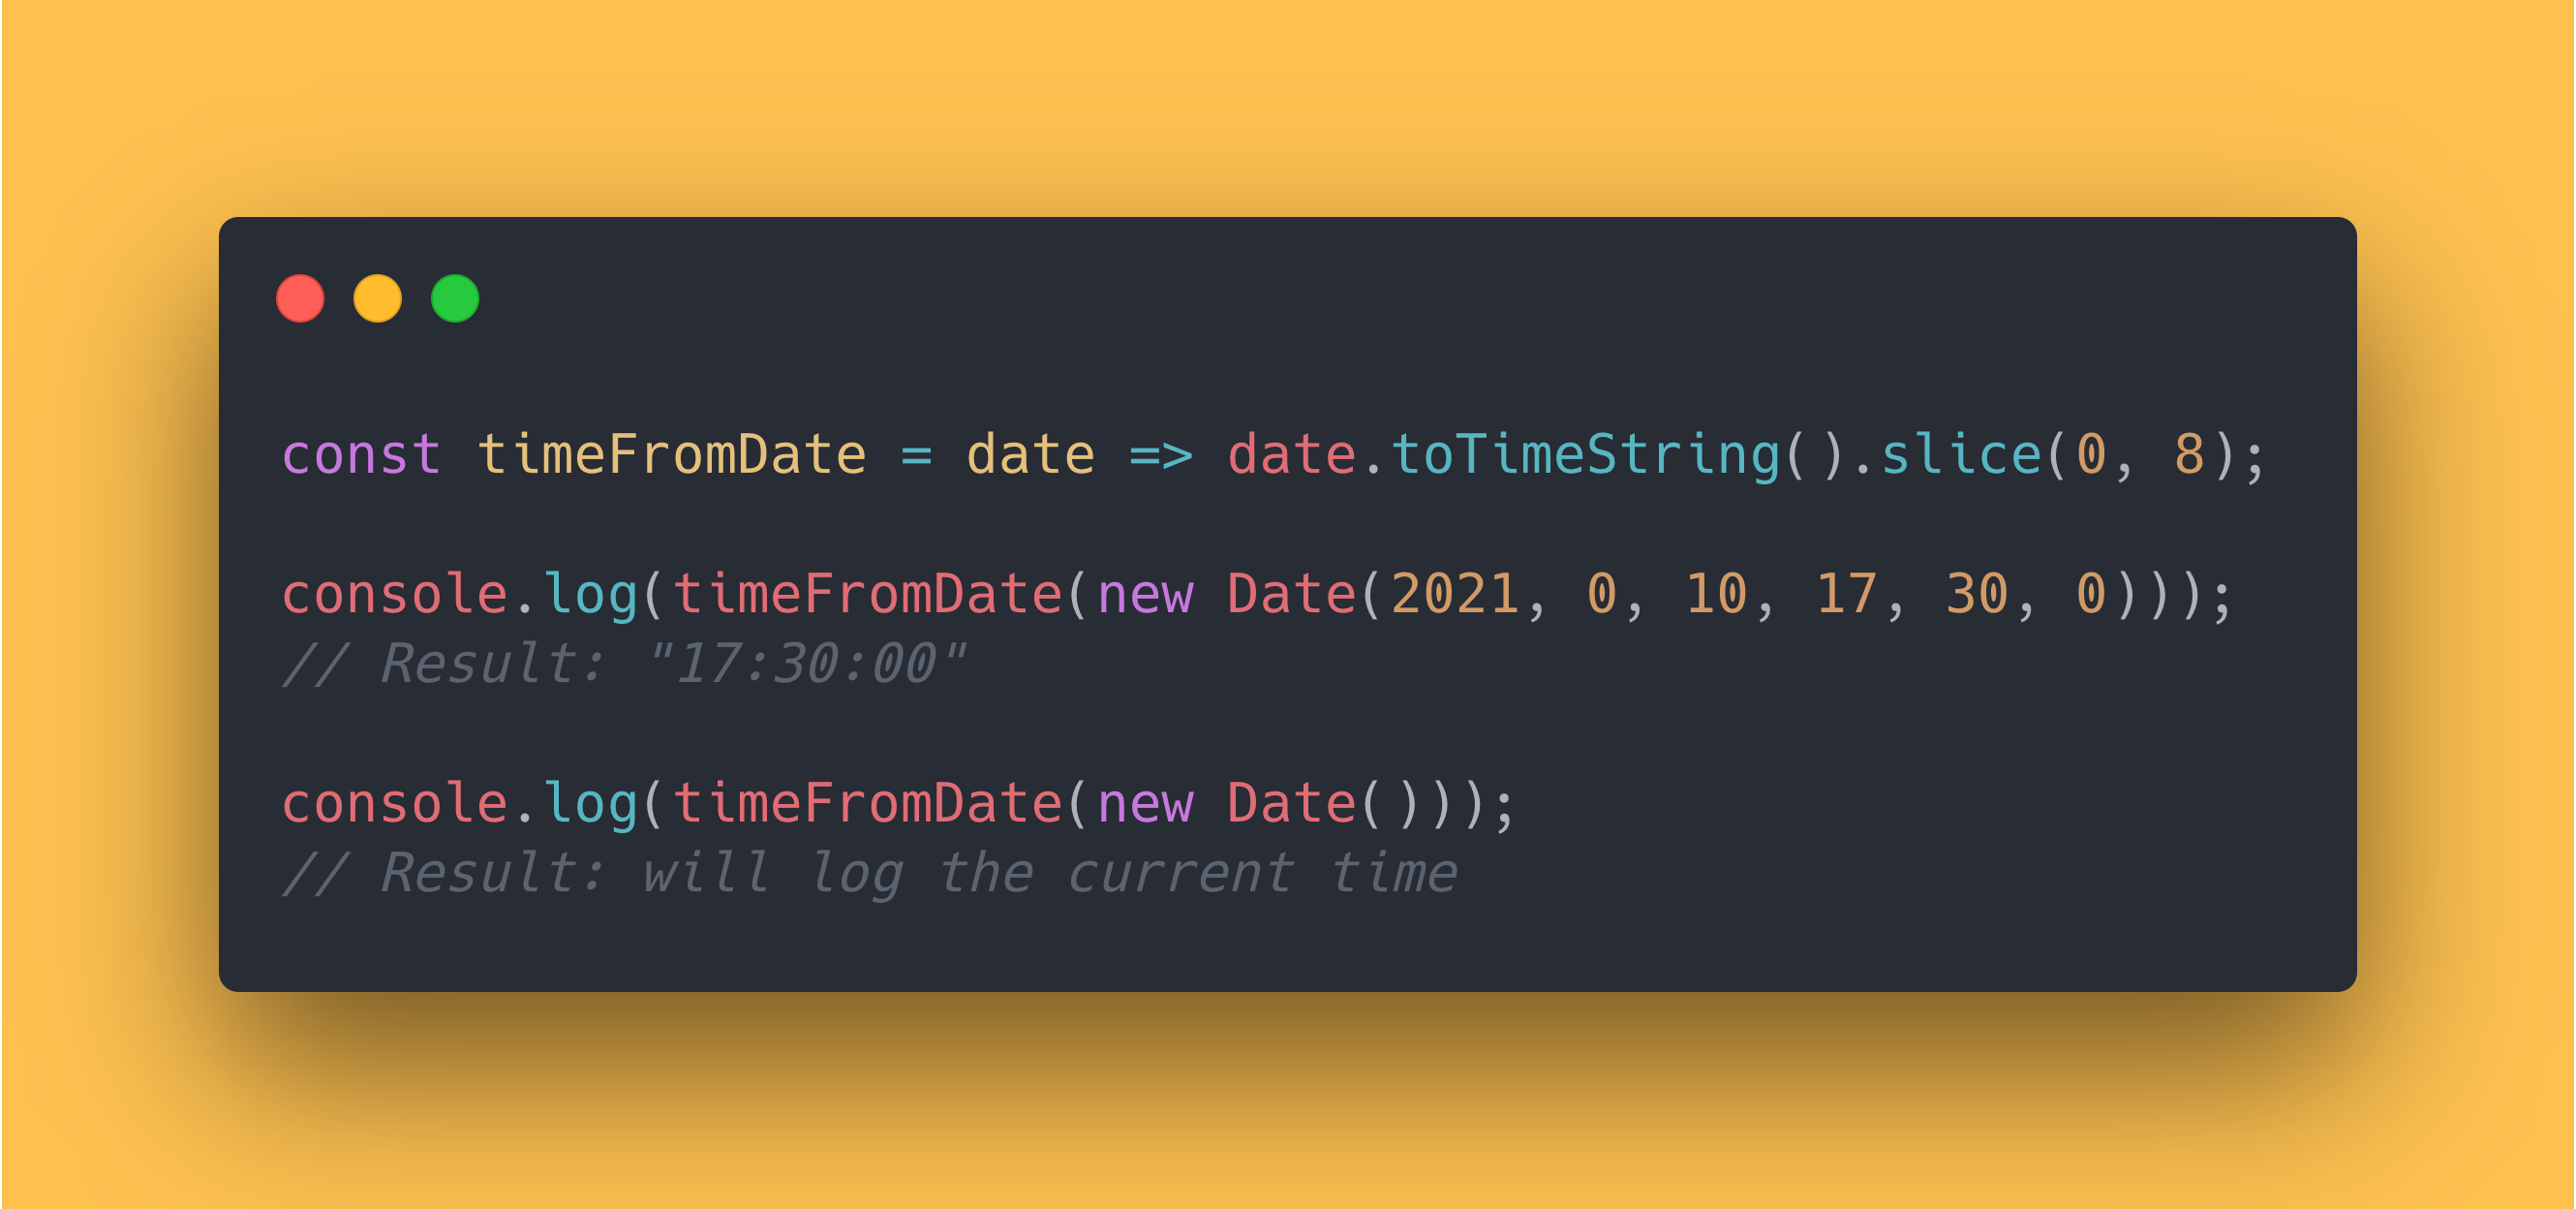 JS code block showing how to get the time from a date by using the toTimeString method and slicing the string.